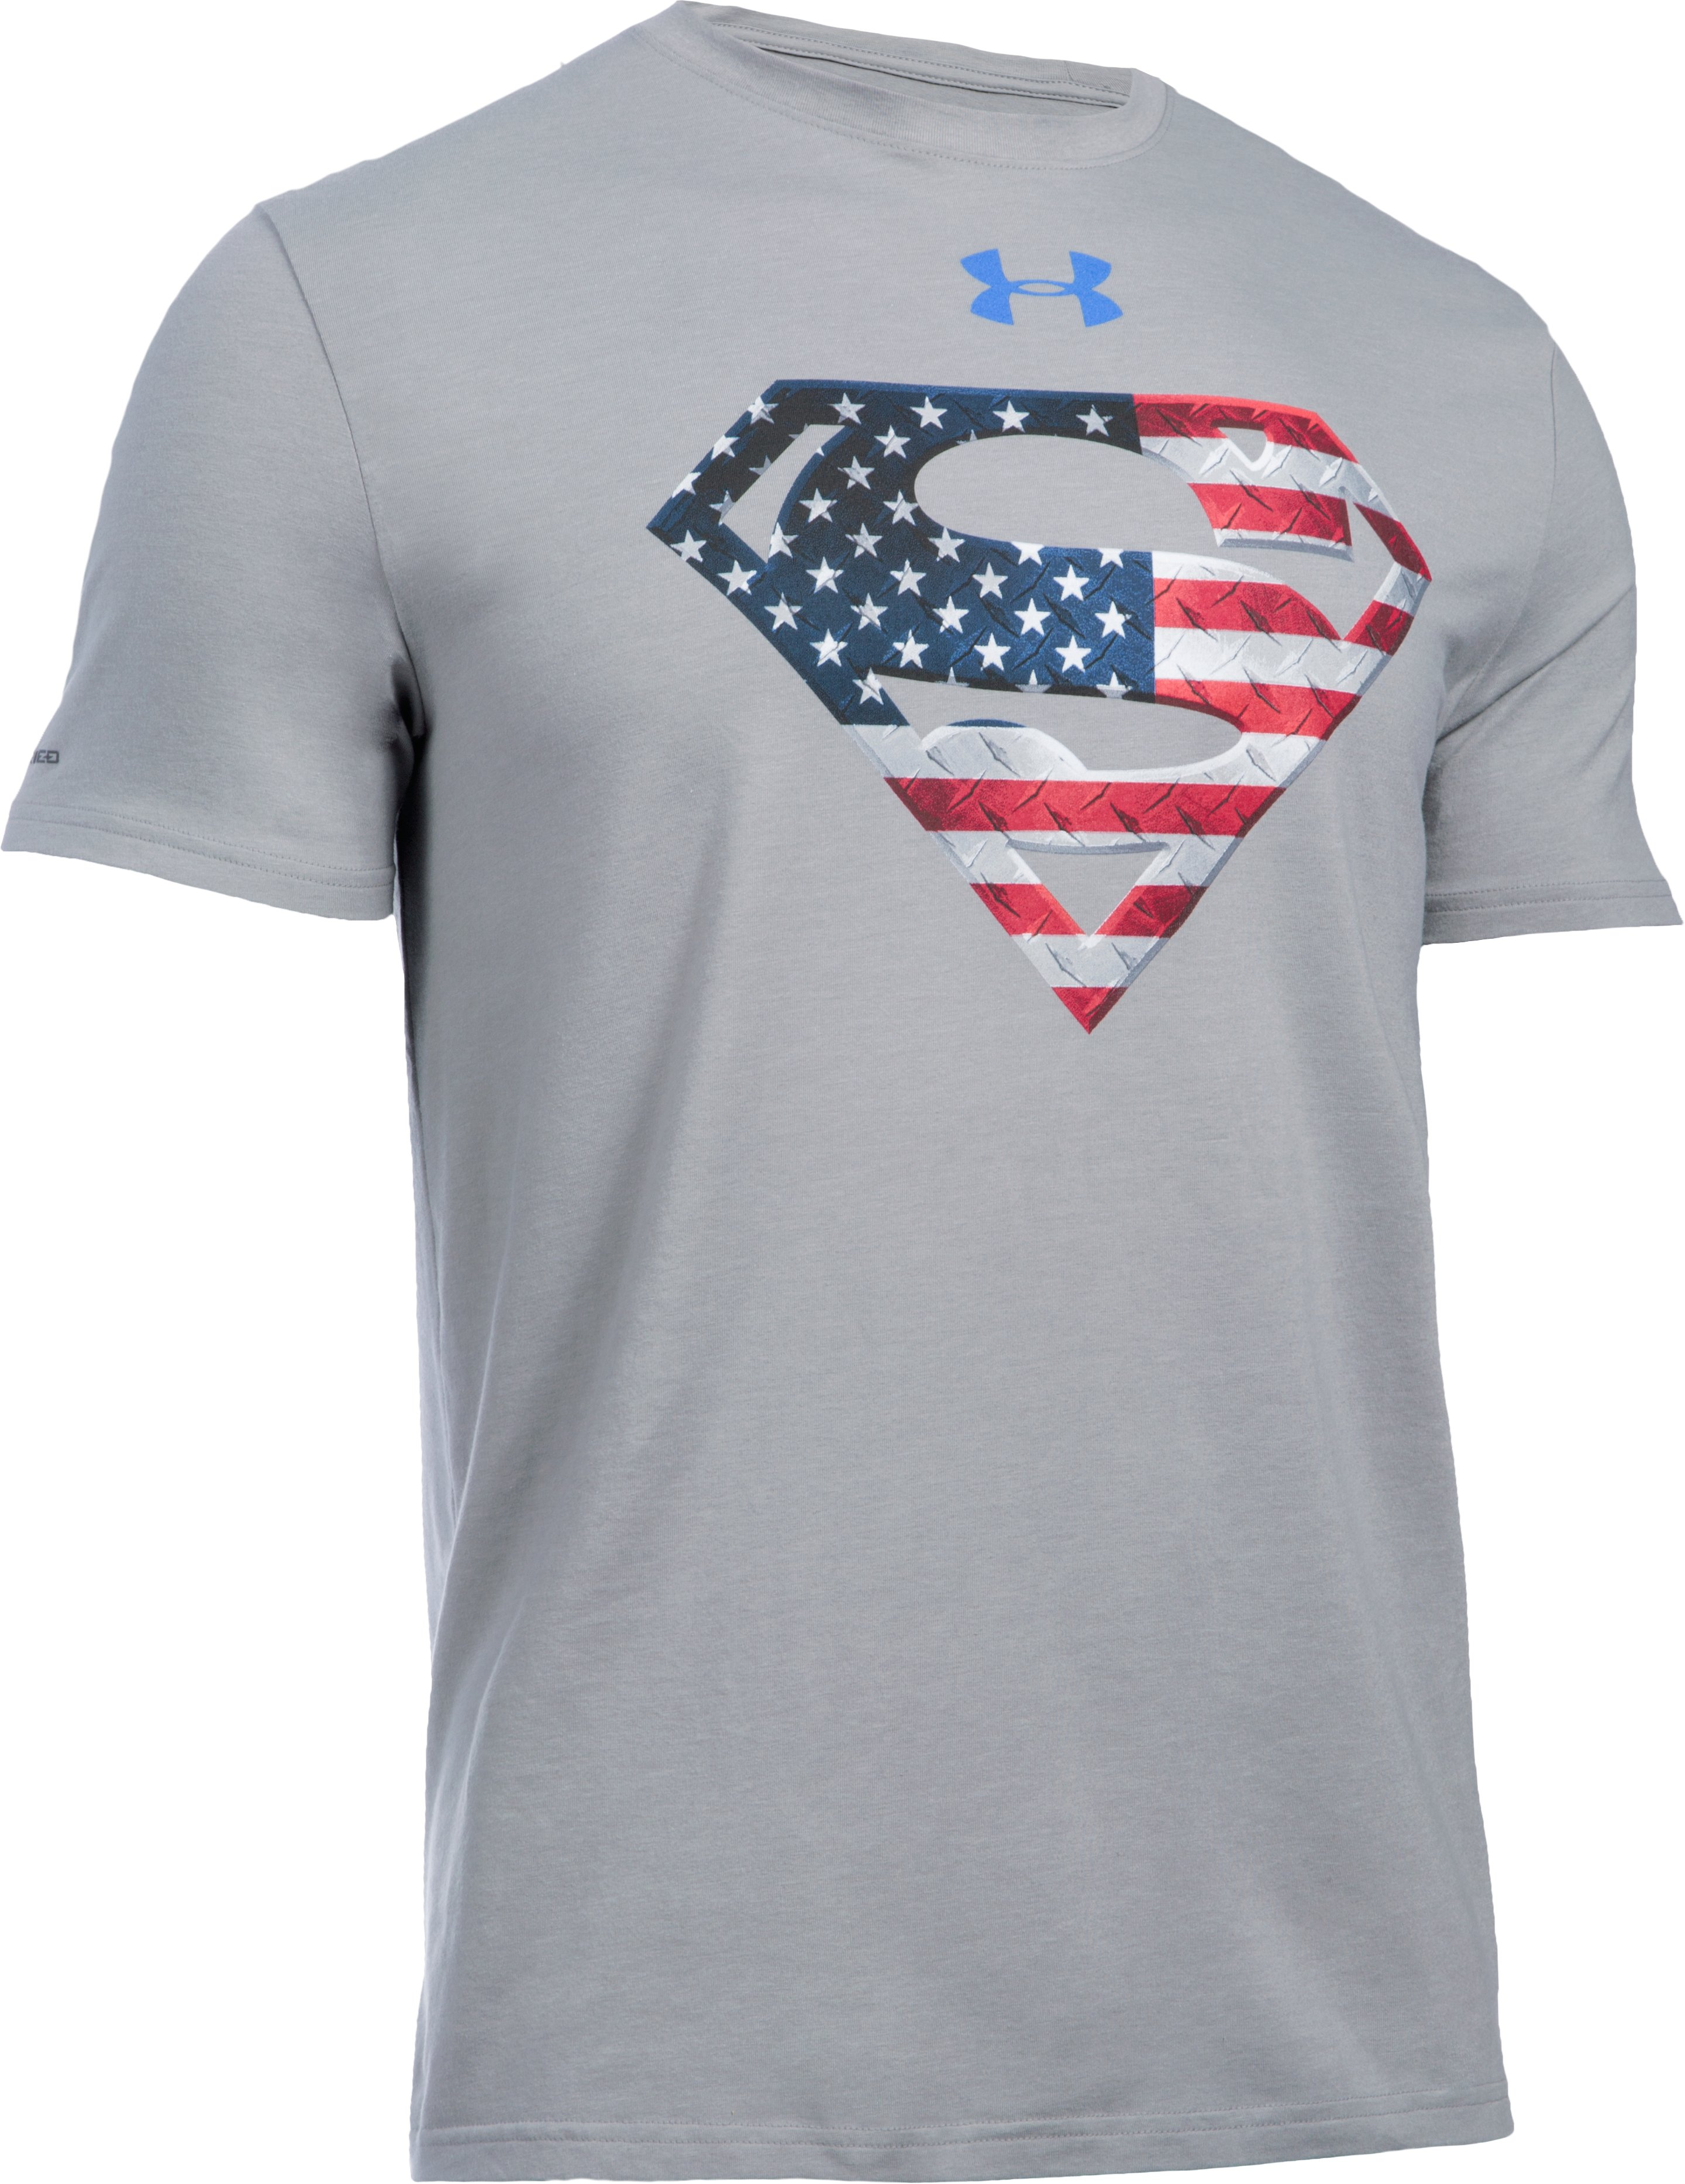 Men's Under Armour® Alter Ego Superman USA T-Shirt, True Gray Heather